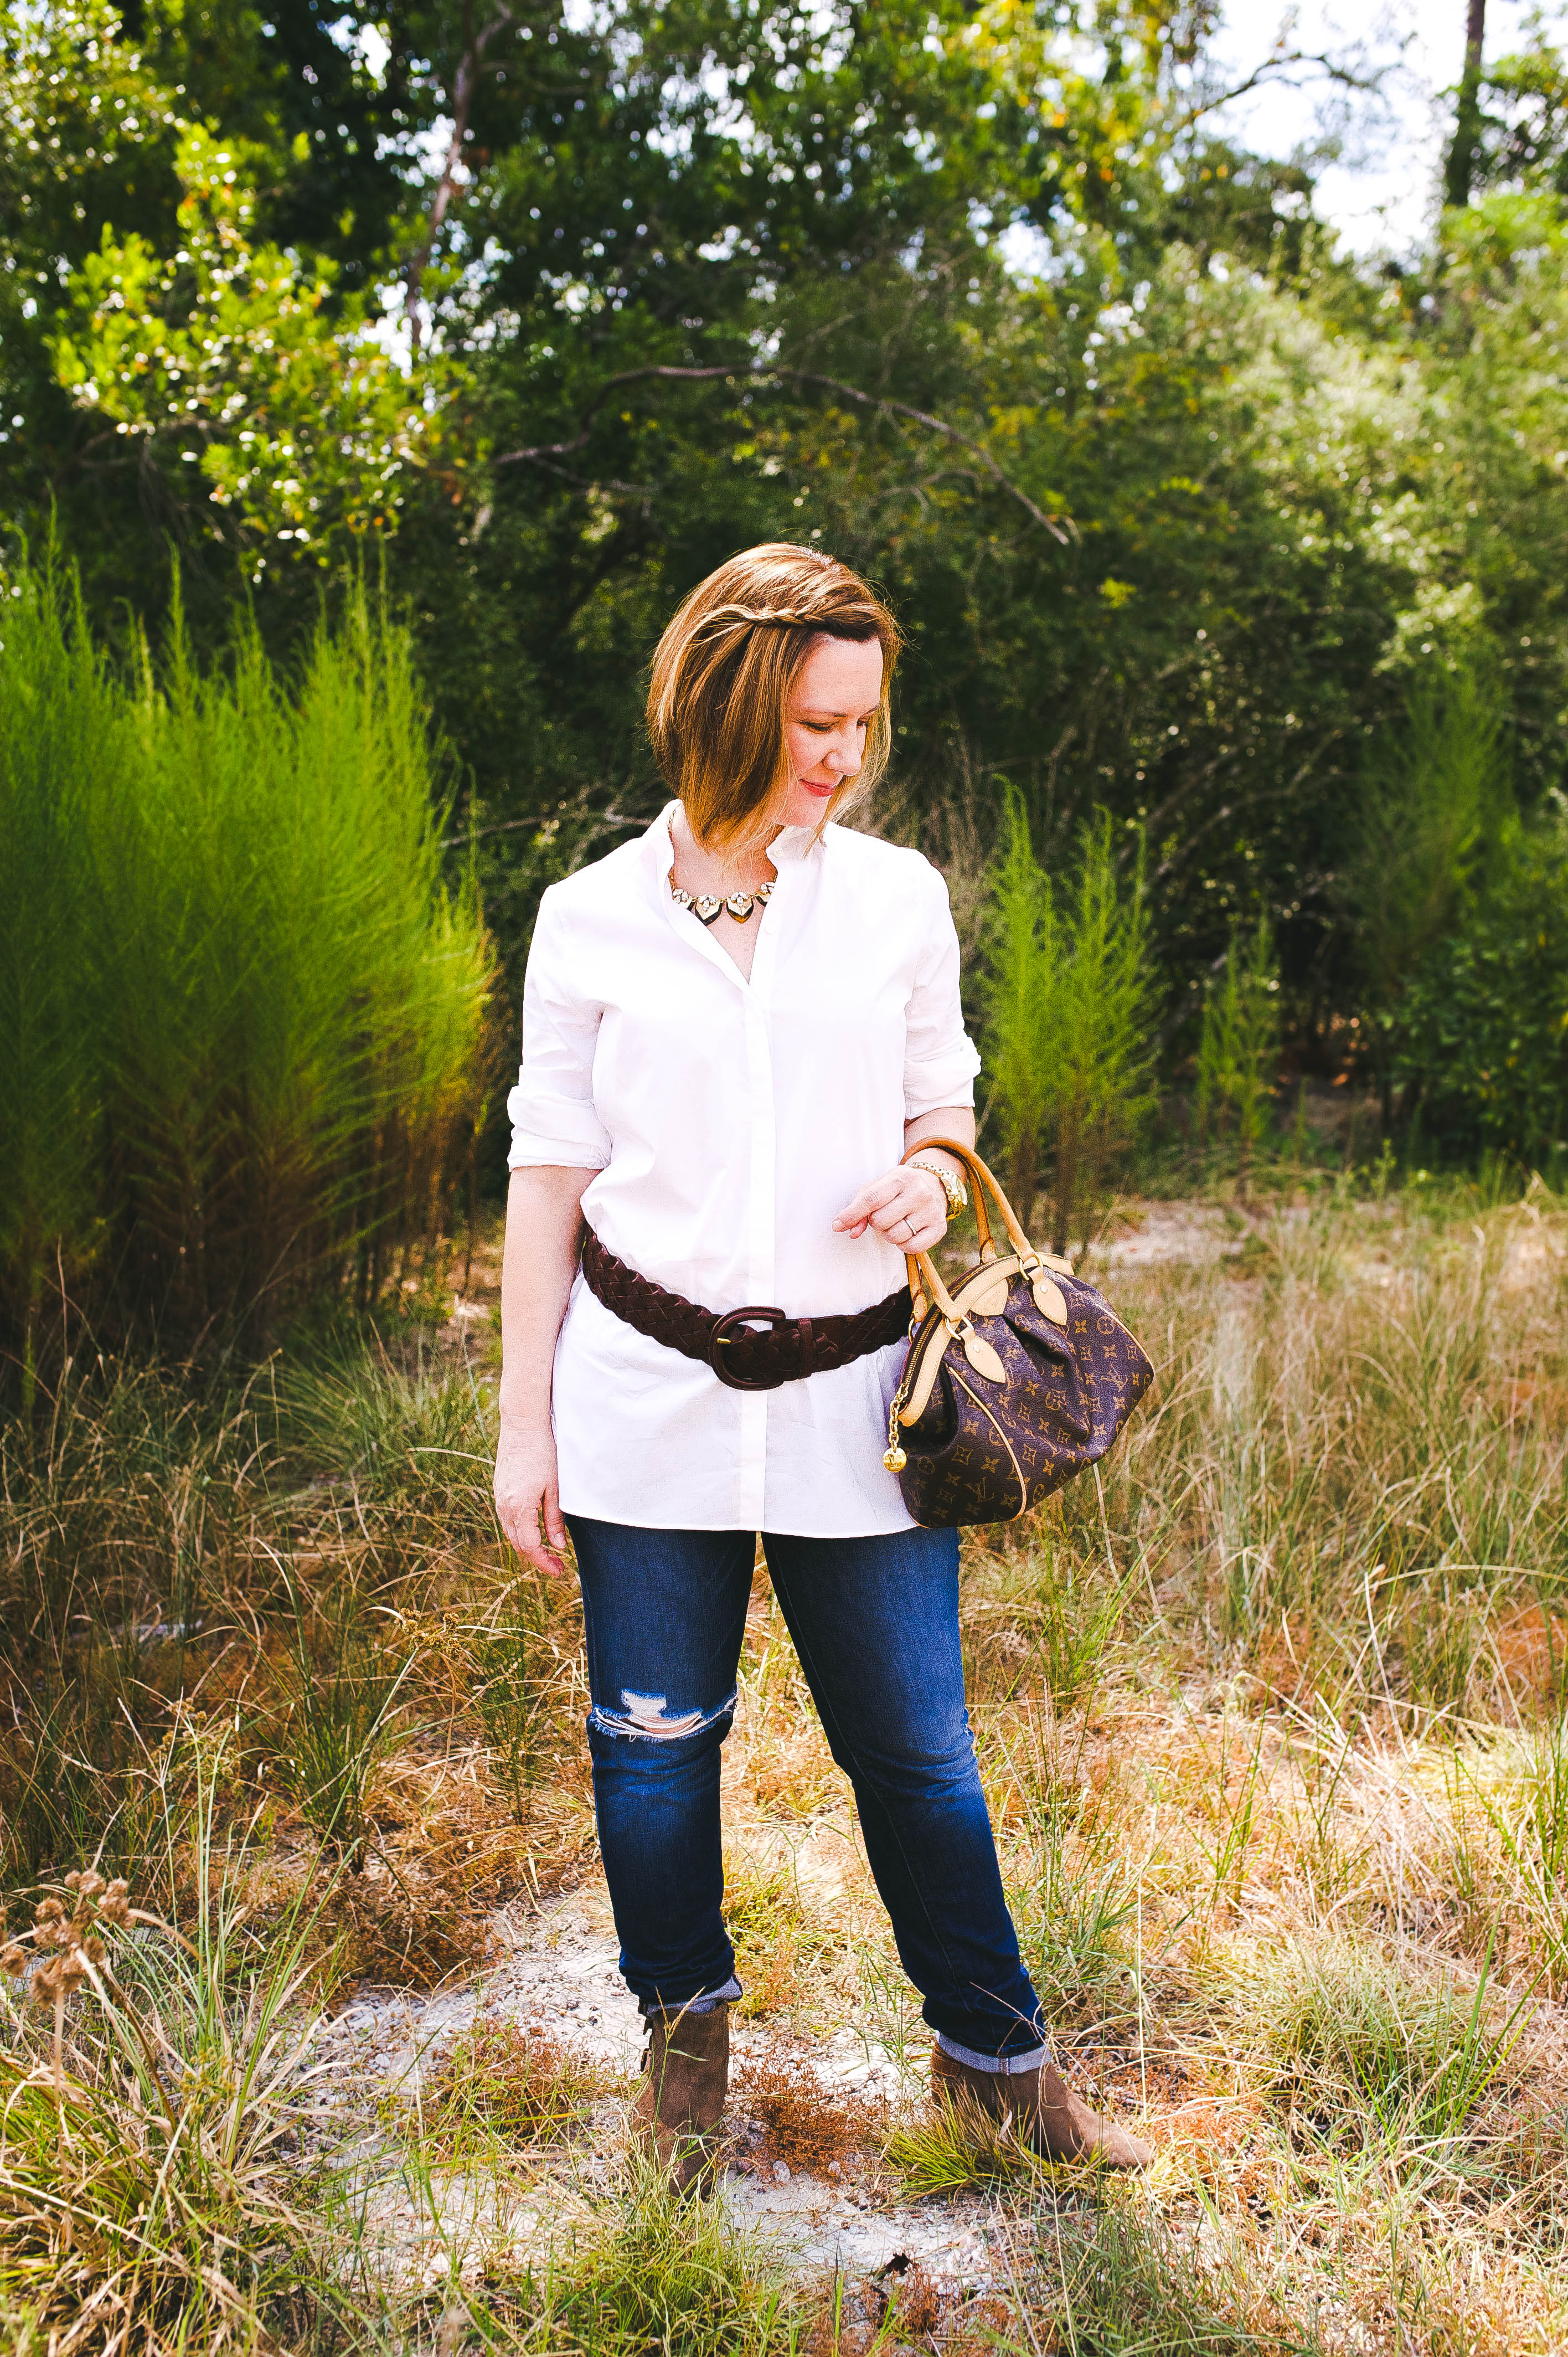 ENDLESS POSSIBILITIES: 3 WAYS TO WEAR THE ENDLESS SHIRT